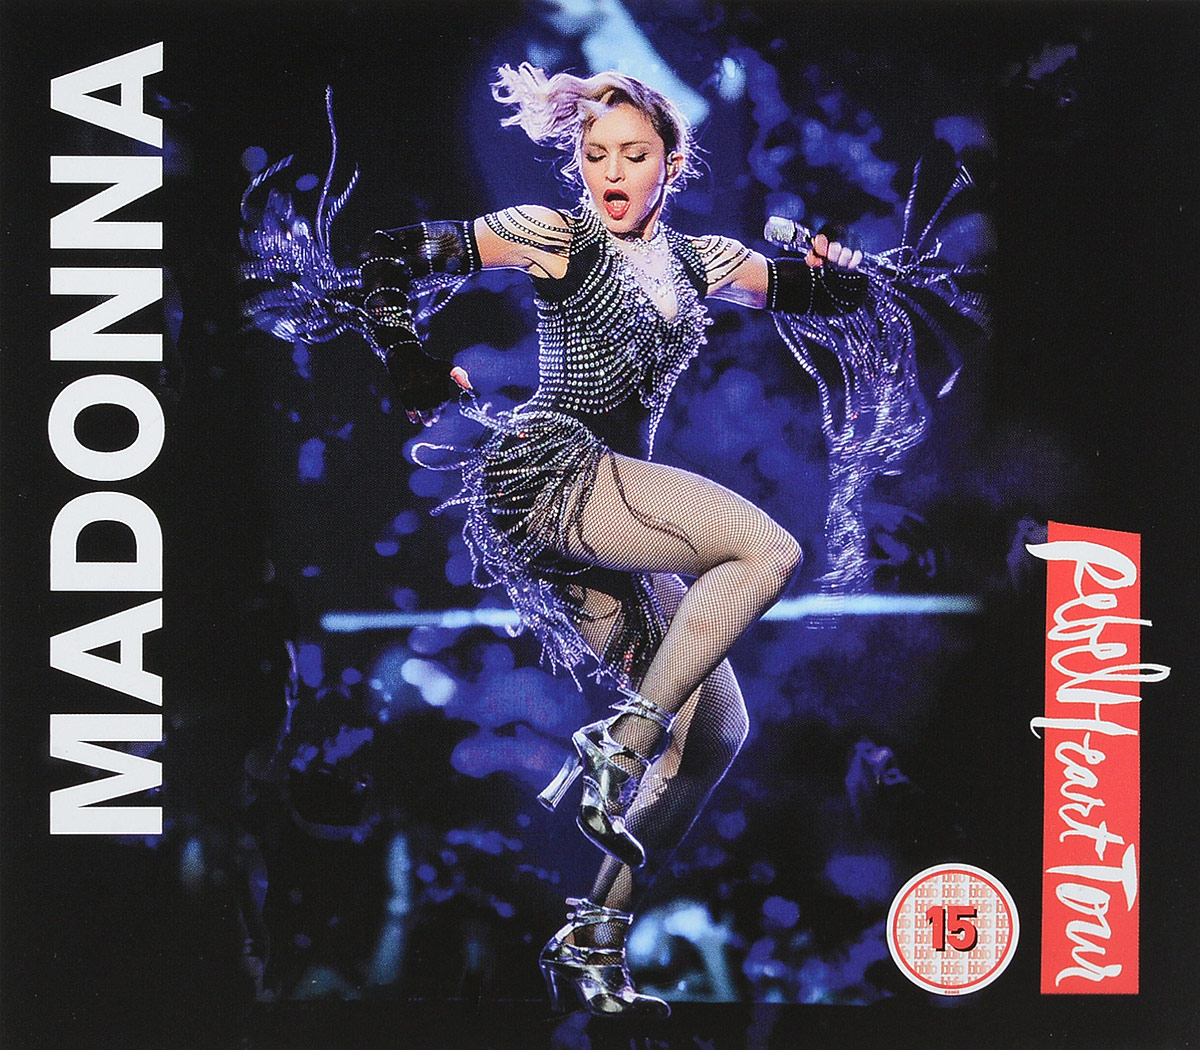 Madonna: Rebel Heart Tour (DVD + CD) 8 units apartment video intercom system 7 inch monitor video doorbell door phone kits ir night vision camera for multi units